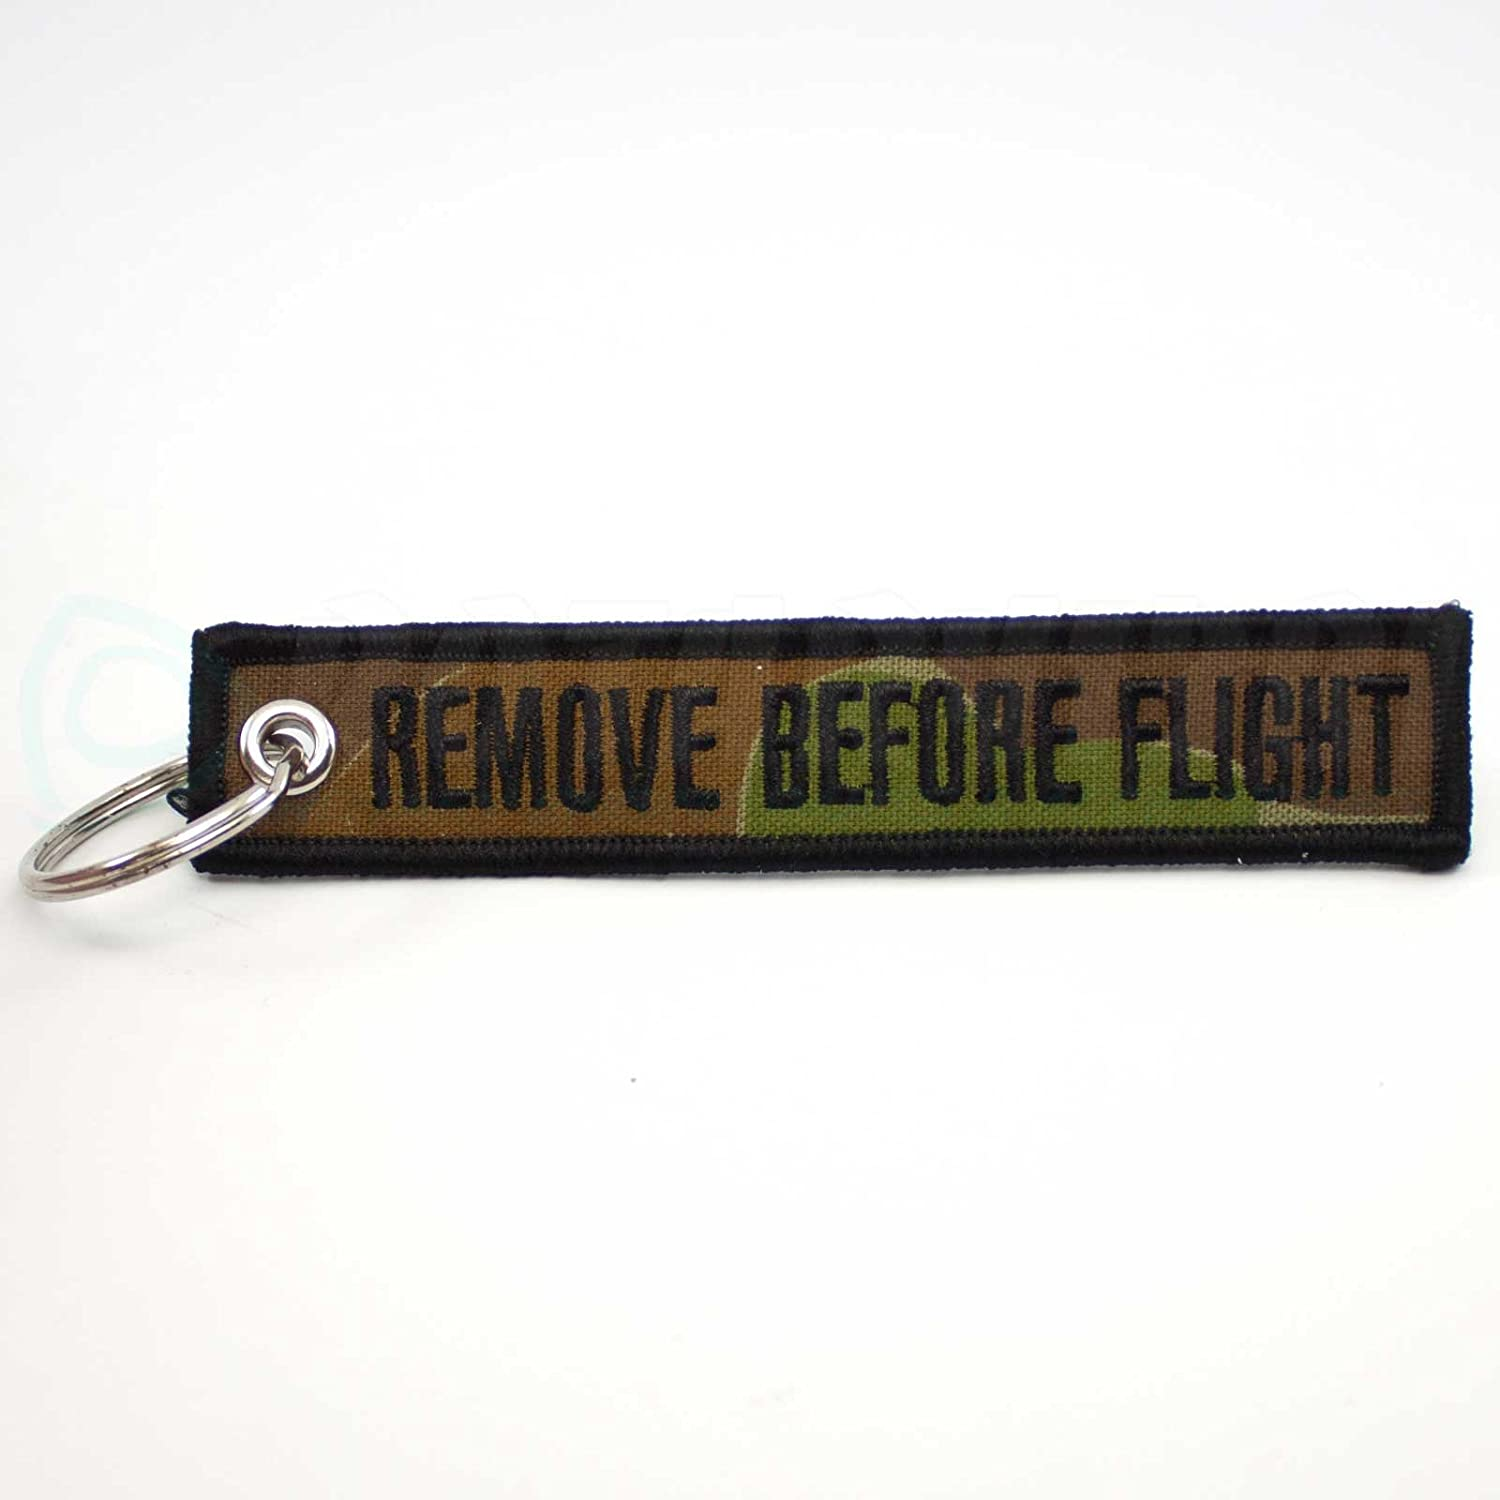 Rotary13B1 Remove Before Flight Camouflage Keychain